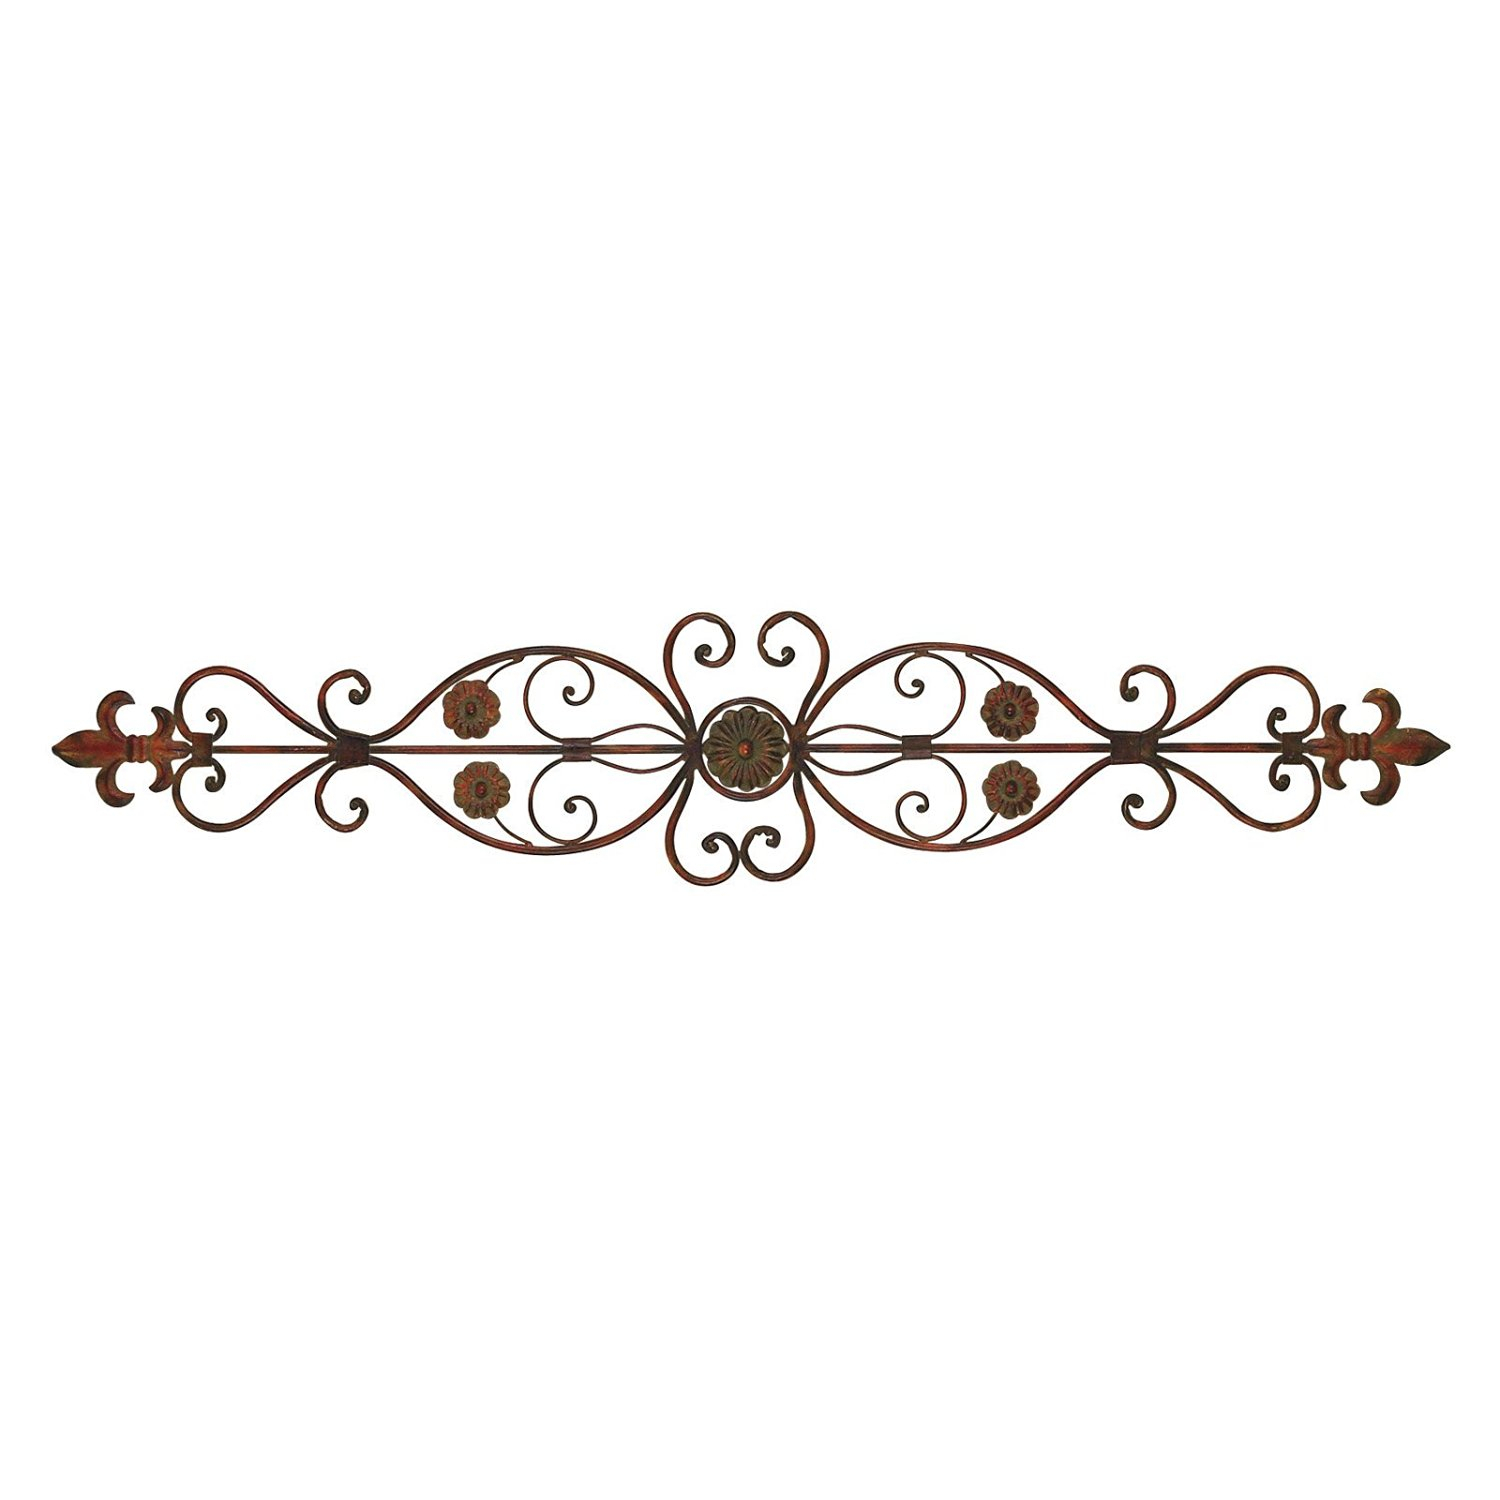 Cheap Ornate Wall Art, Find Ornate Wall Art Deals On Line At inside Ornate Scroll Wall Decor (Image 3 of 30)